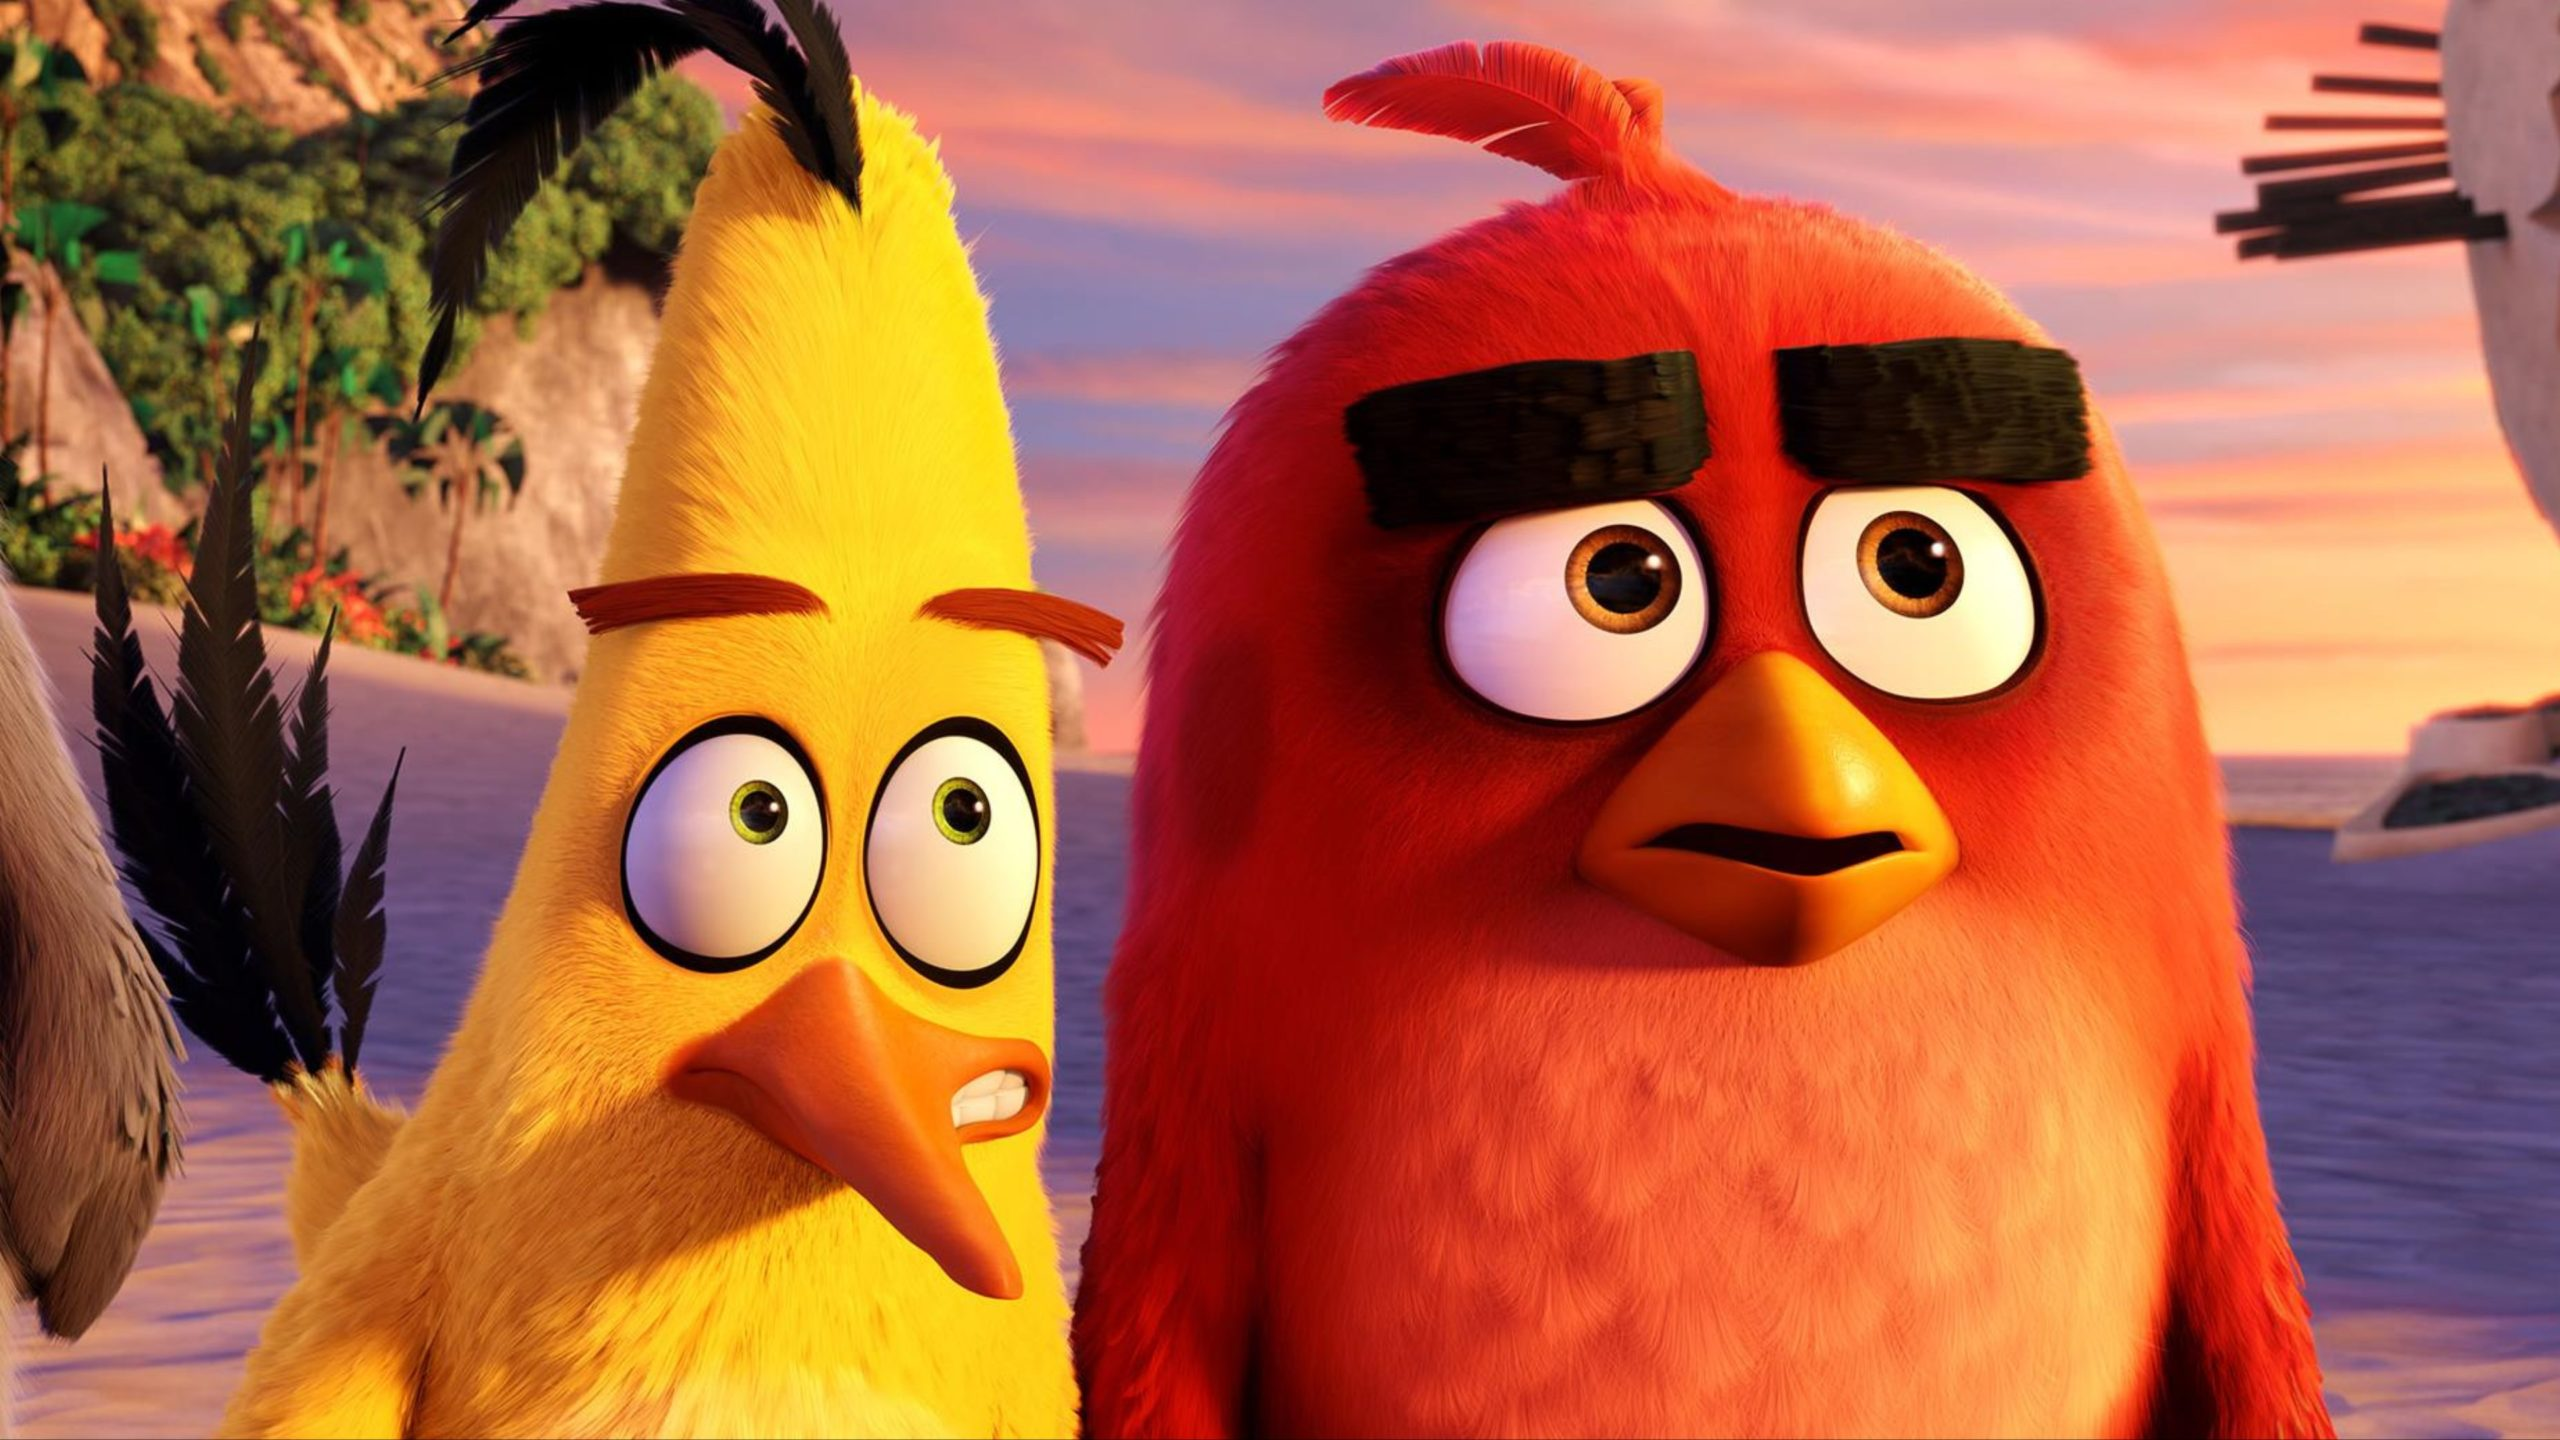 784884 byte size of Red And Chuck Angry Birds.jpg